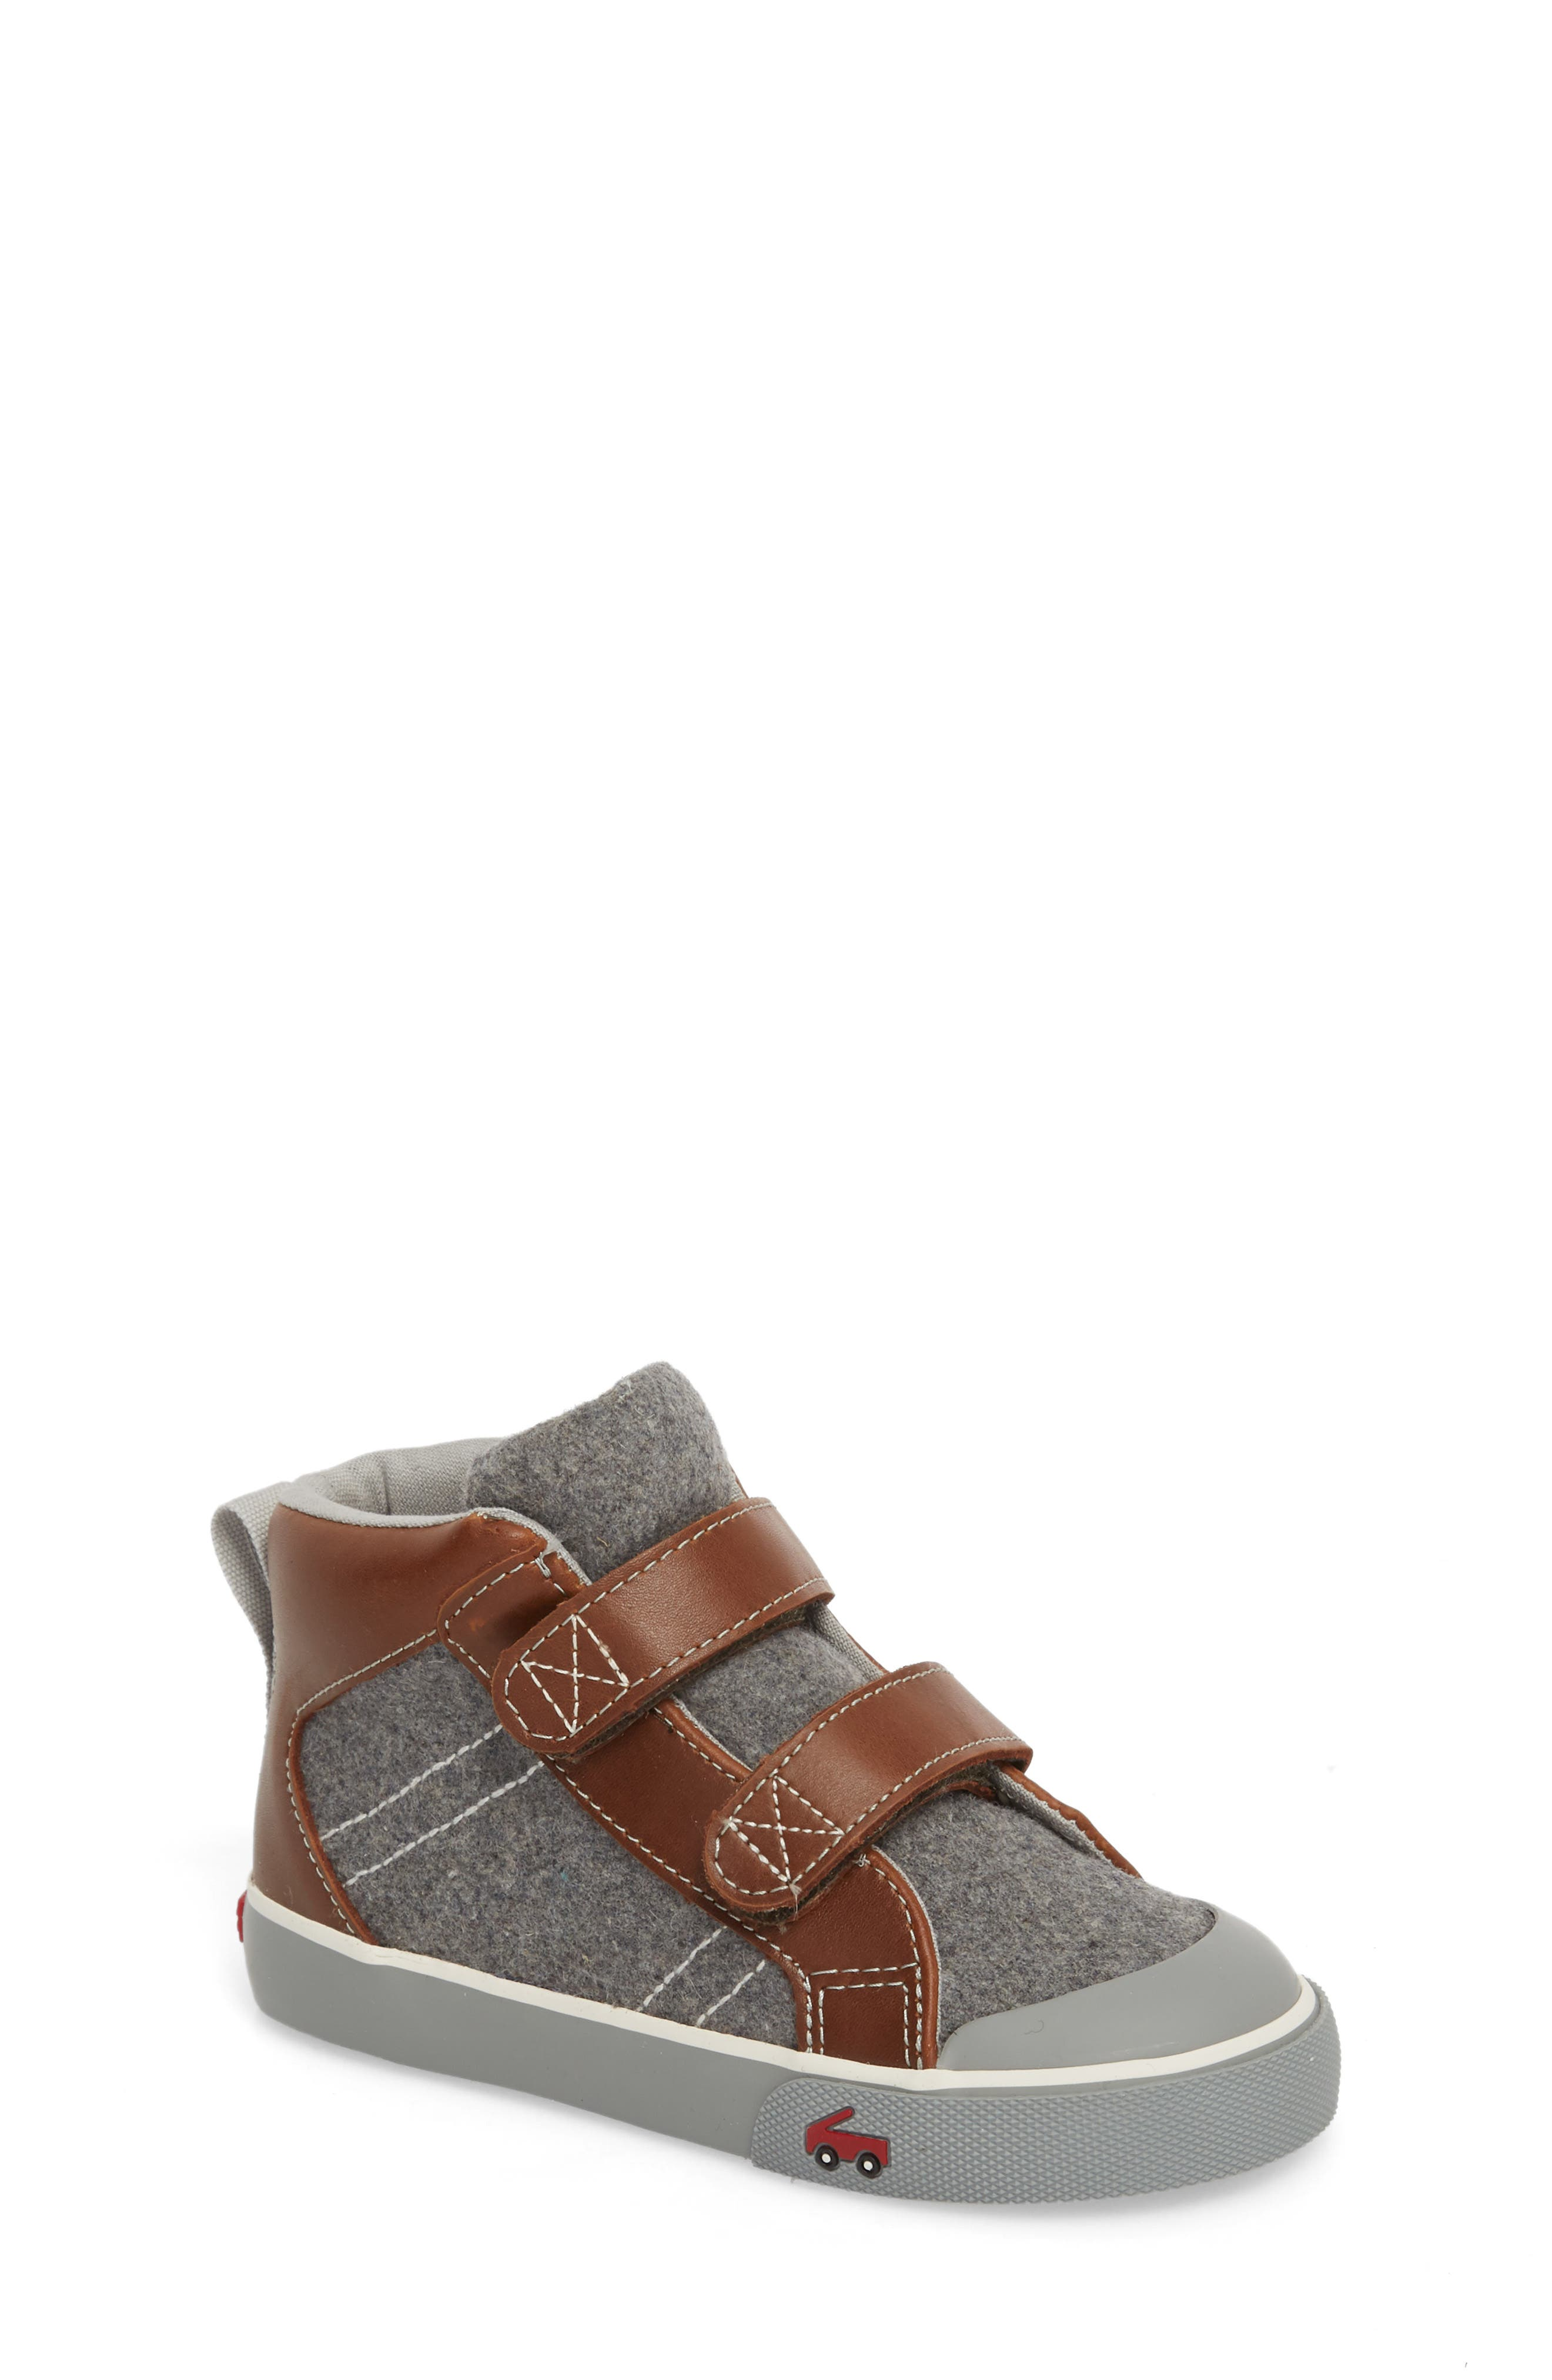 Matty Sneaker, Main, color, GRAY FELT